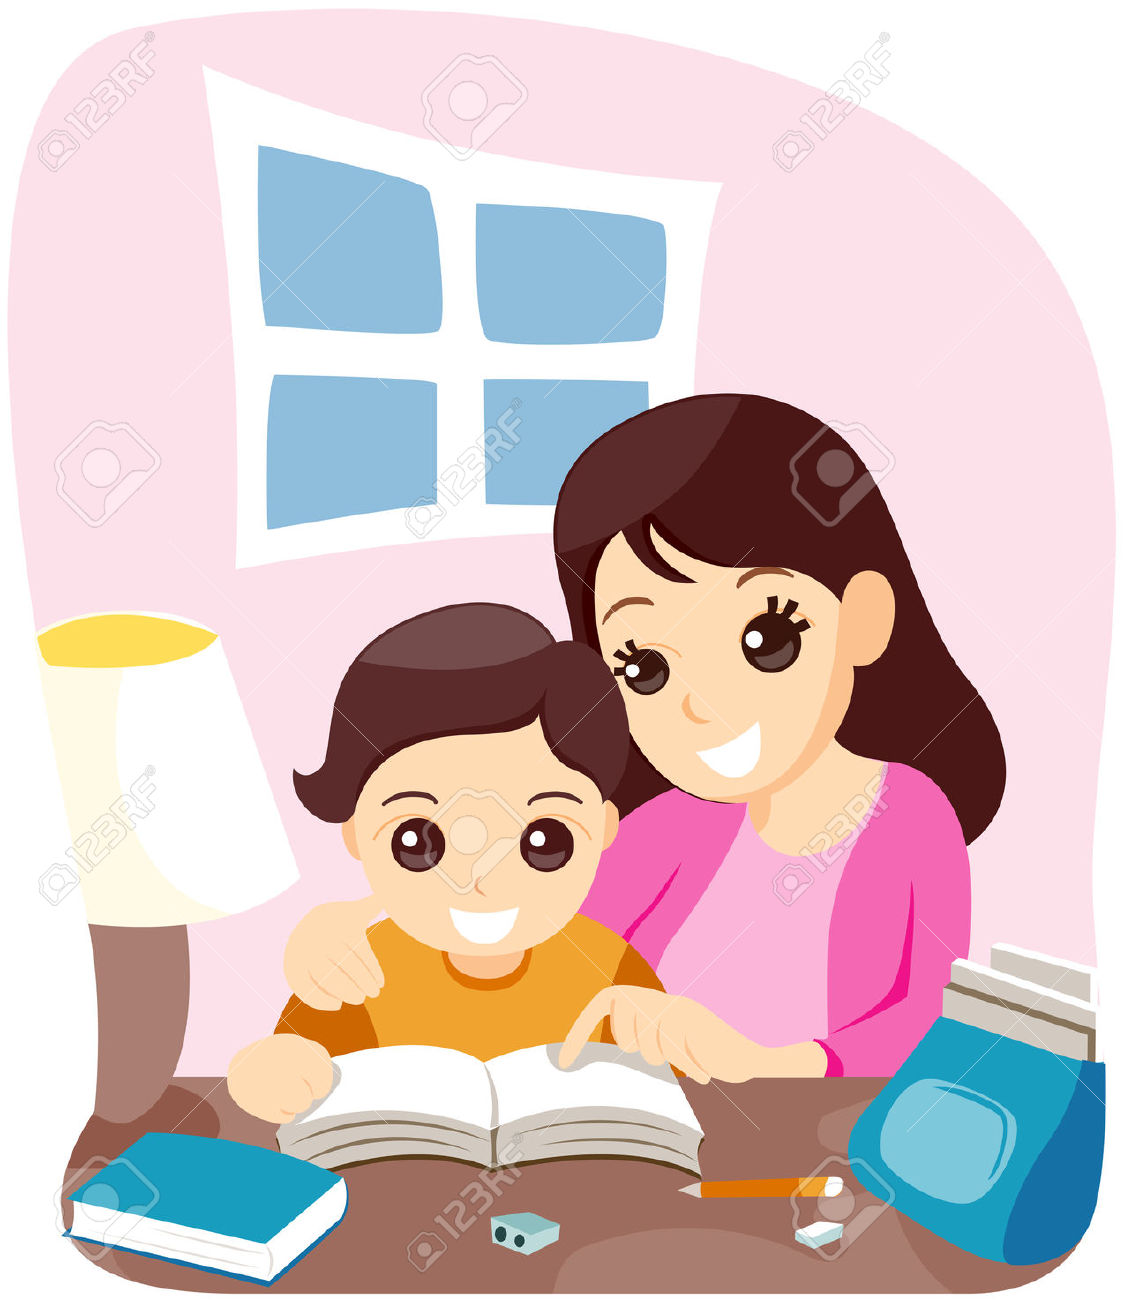 Boy turning in assignment clipart jpg transparent Boy turning in assignment to teacher clipart - ClipartNinja jpg transparent